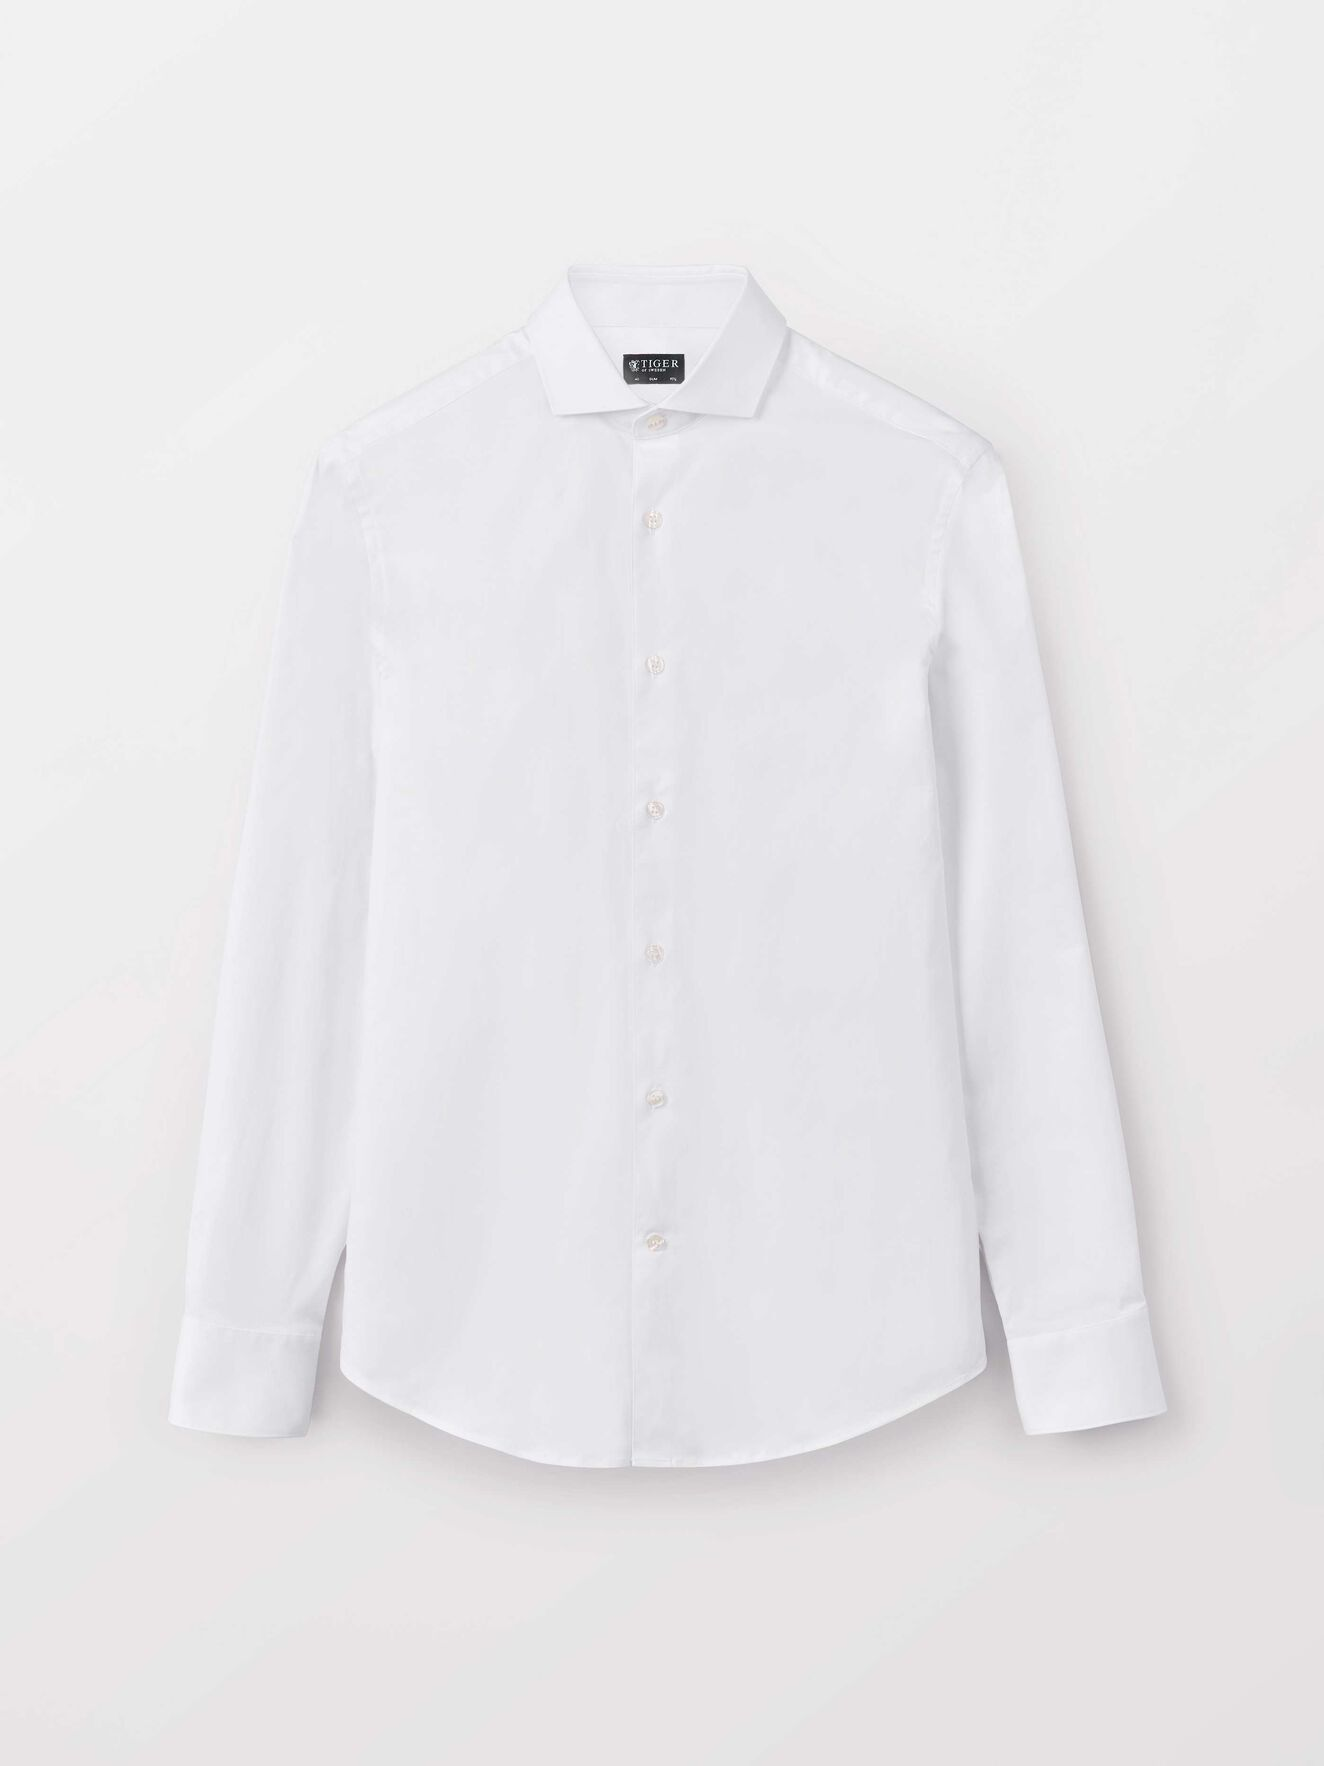 9239e0db5314 Shirts - Browse short- and long-sleeved shirts online at Tiger of Sweden